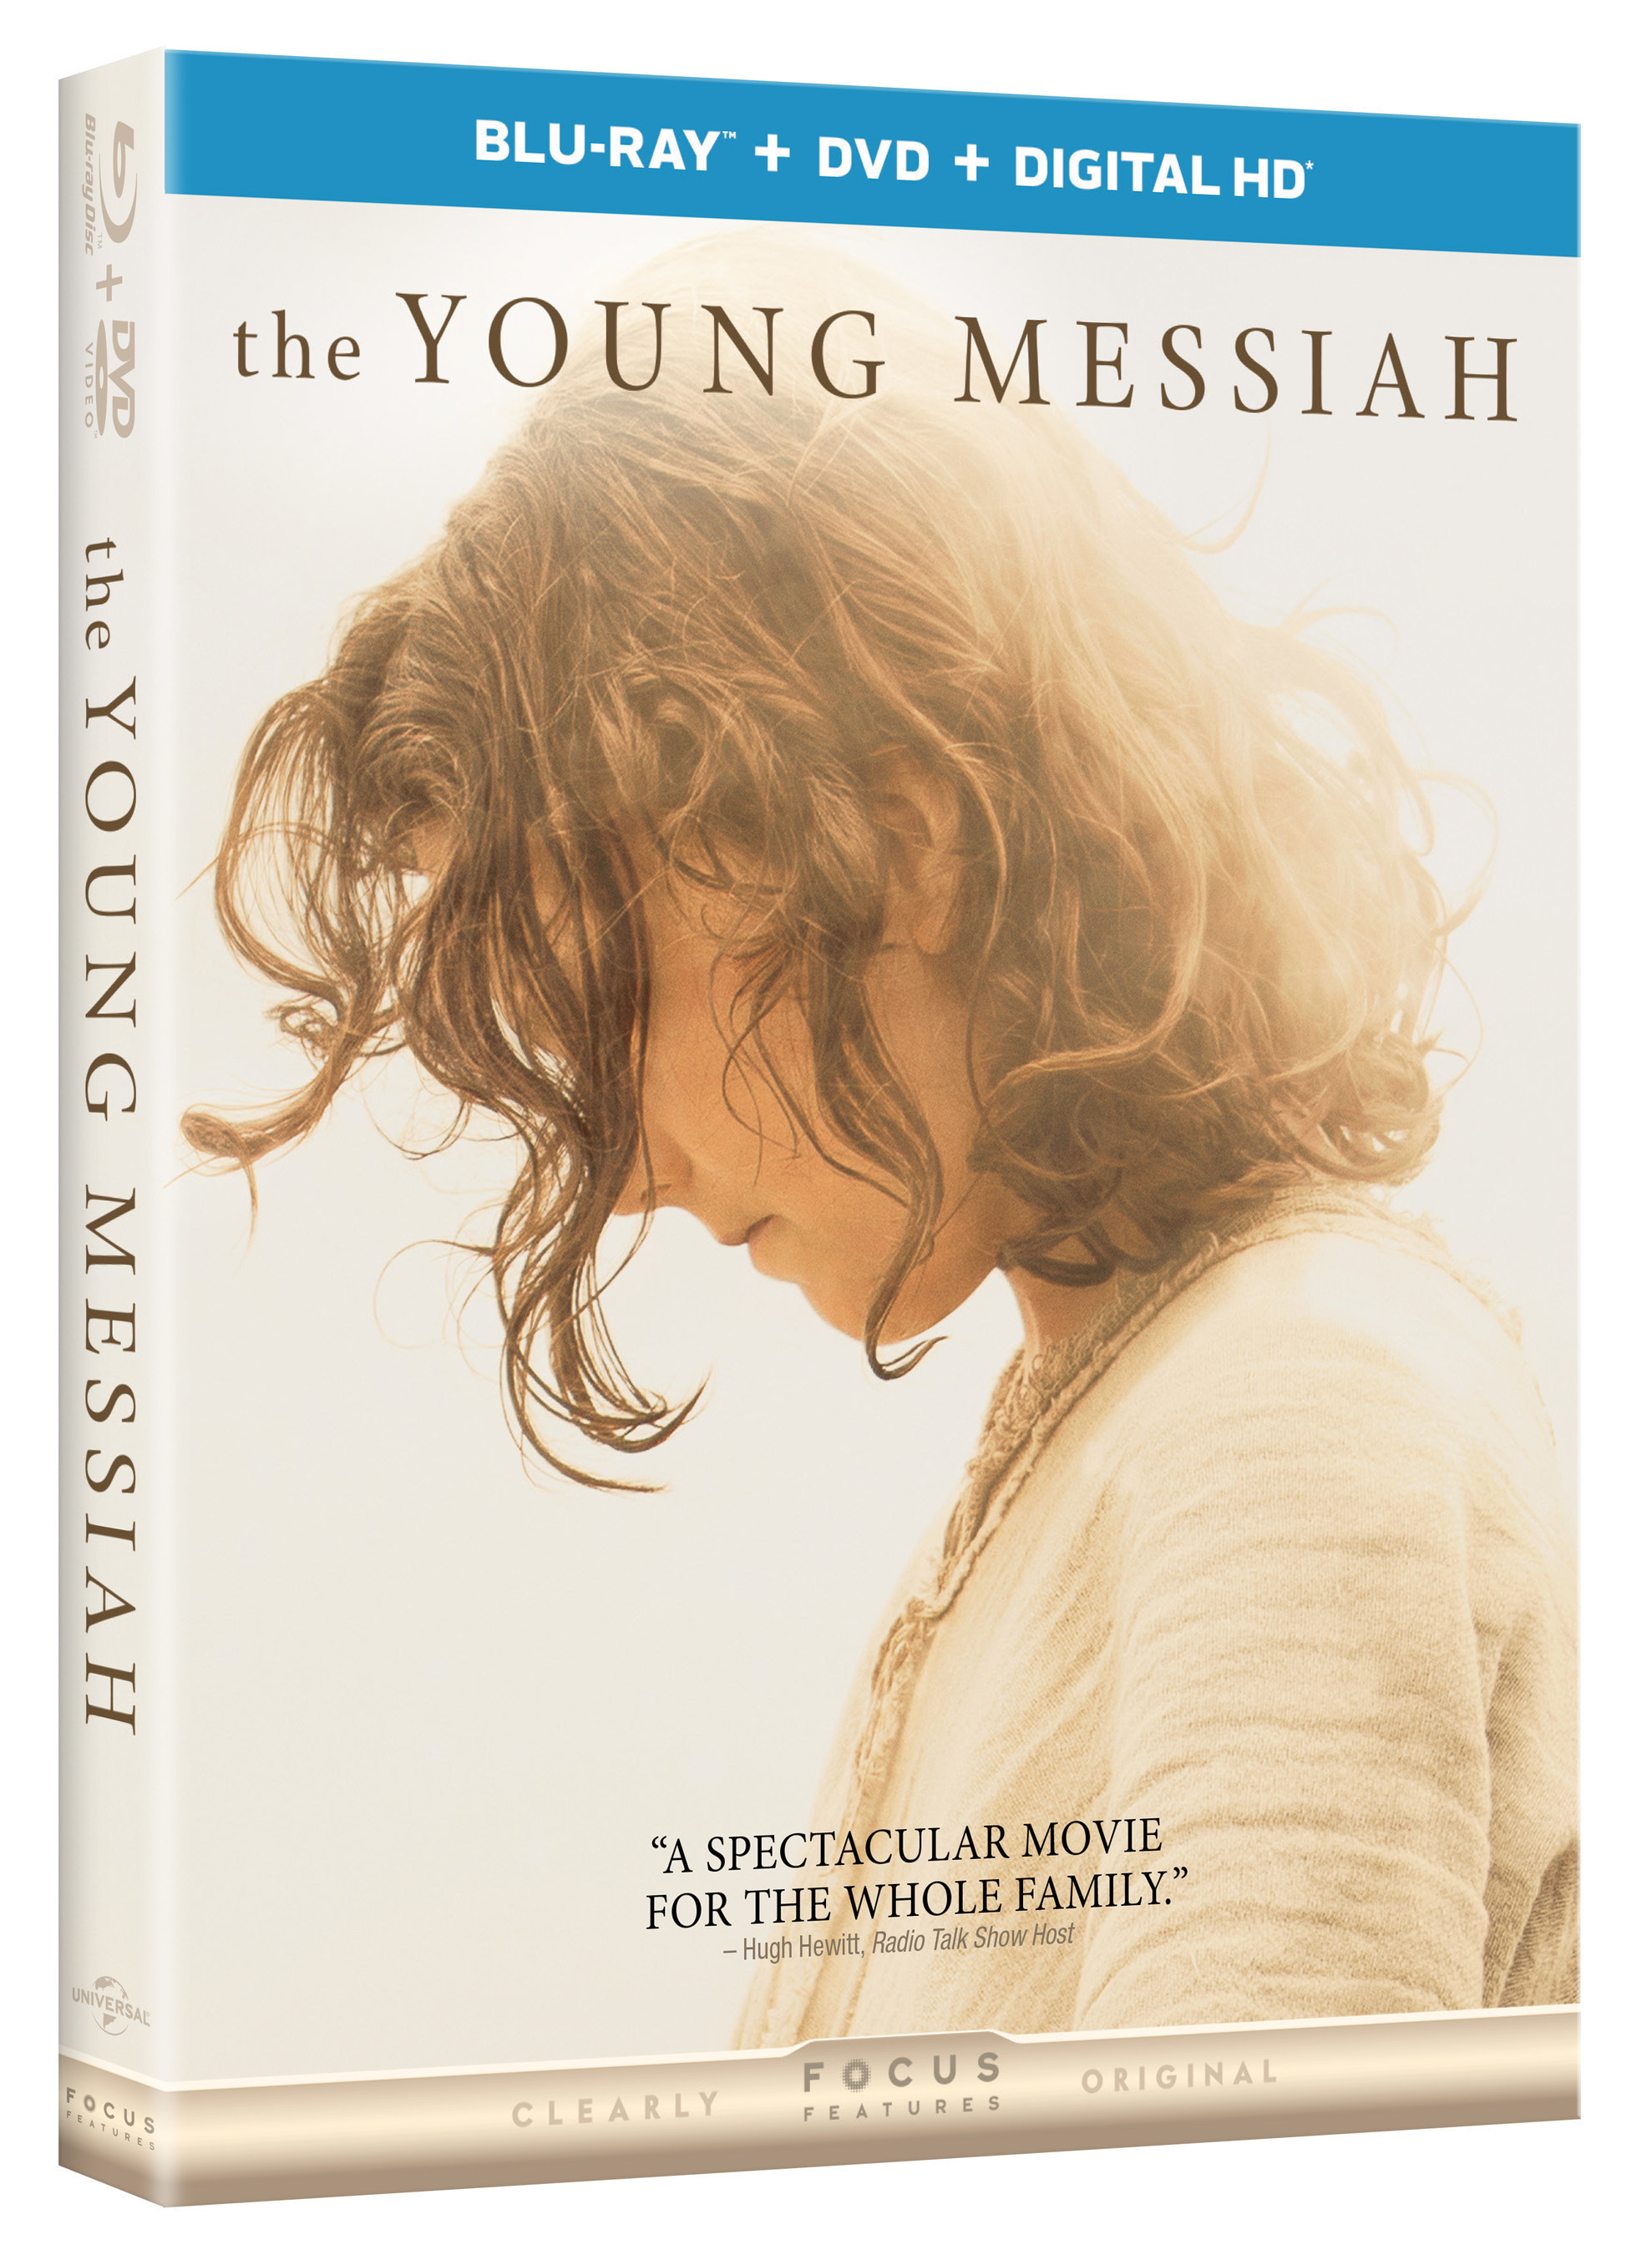 From Universal Pictures Home Entertainment: The Young Messiah